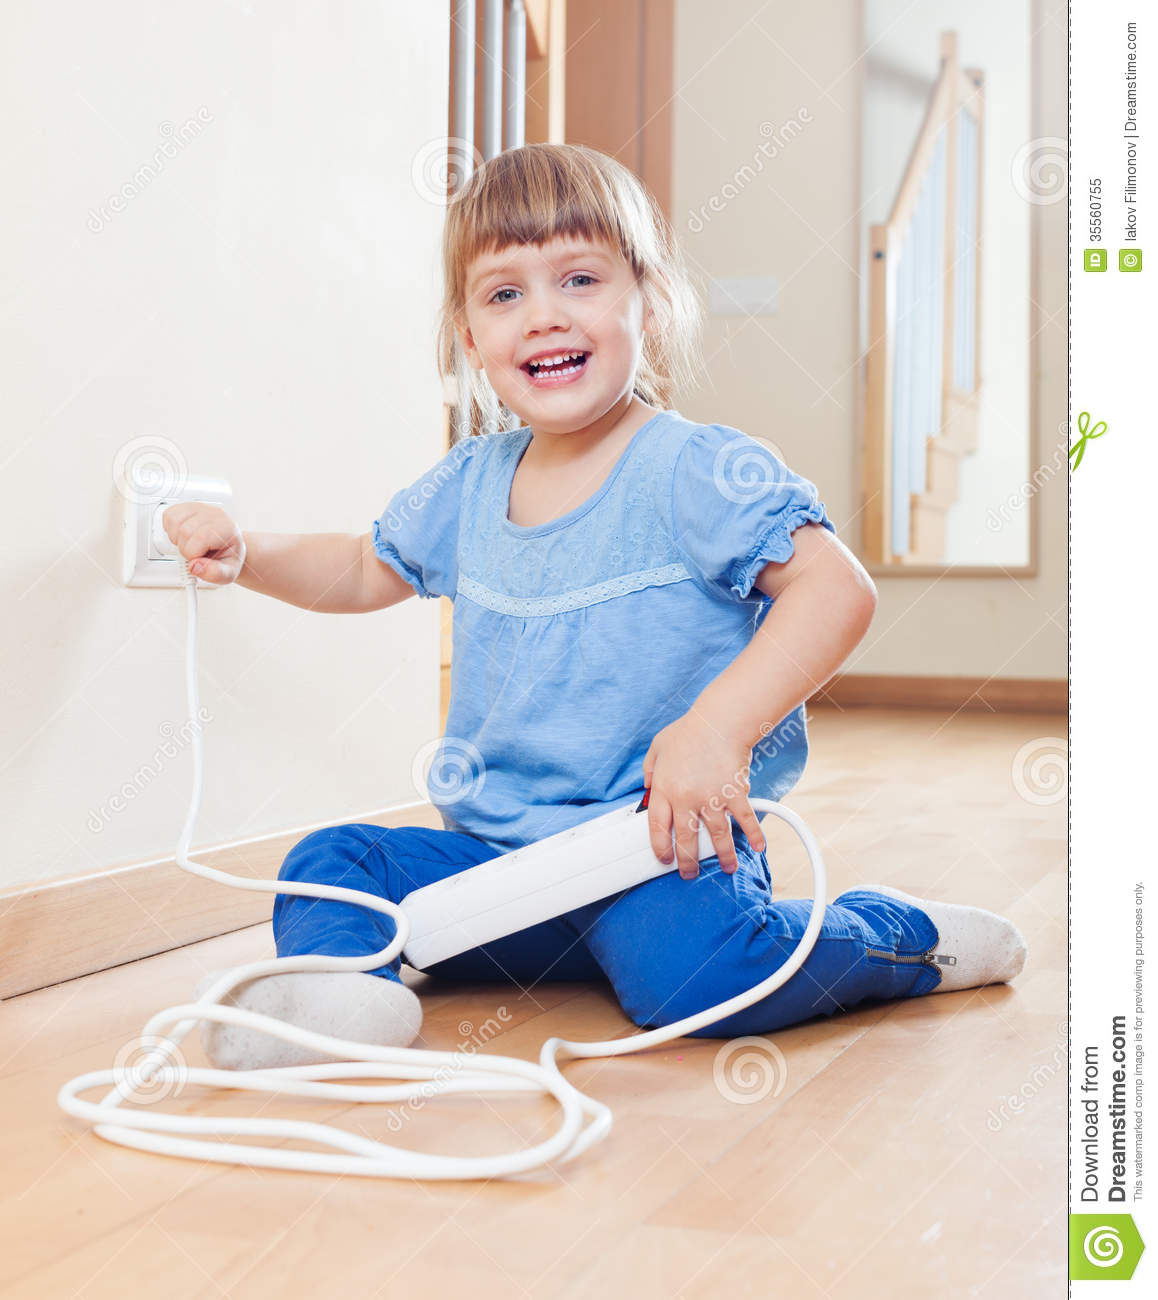 Child Playing With Electricity Stock Image Image Of